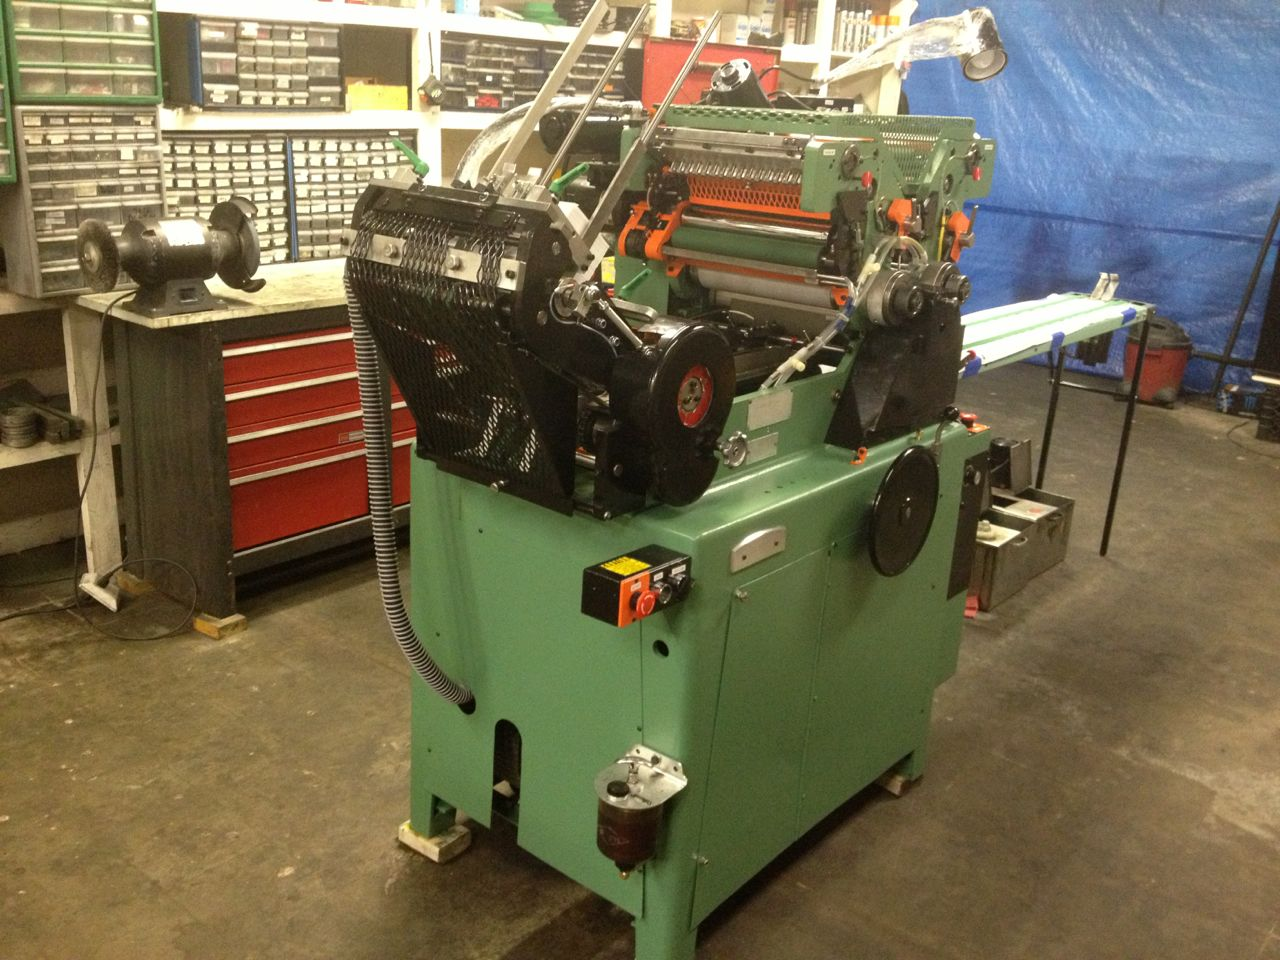 HALM JET PRESS sn 2845 model JP-TWOD-P rebuilt from the frame up LIKE NEW